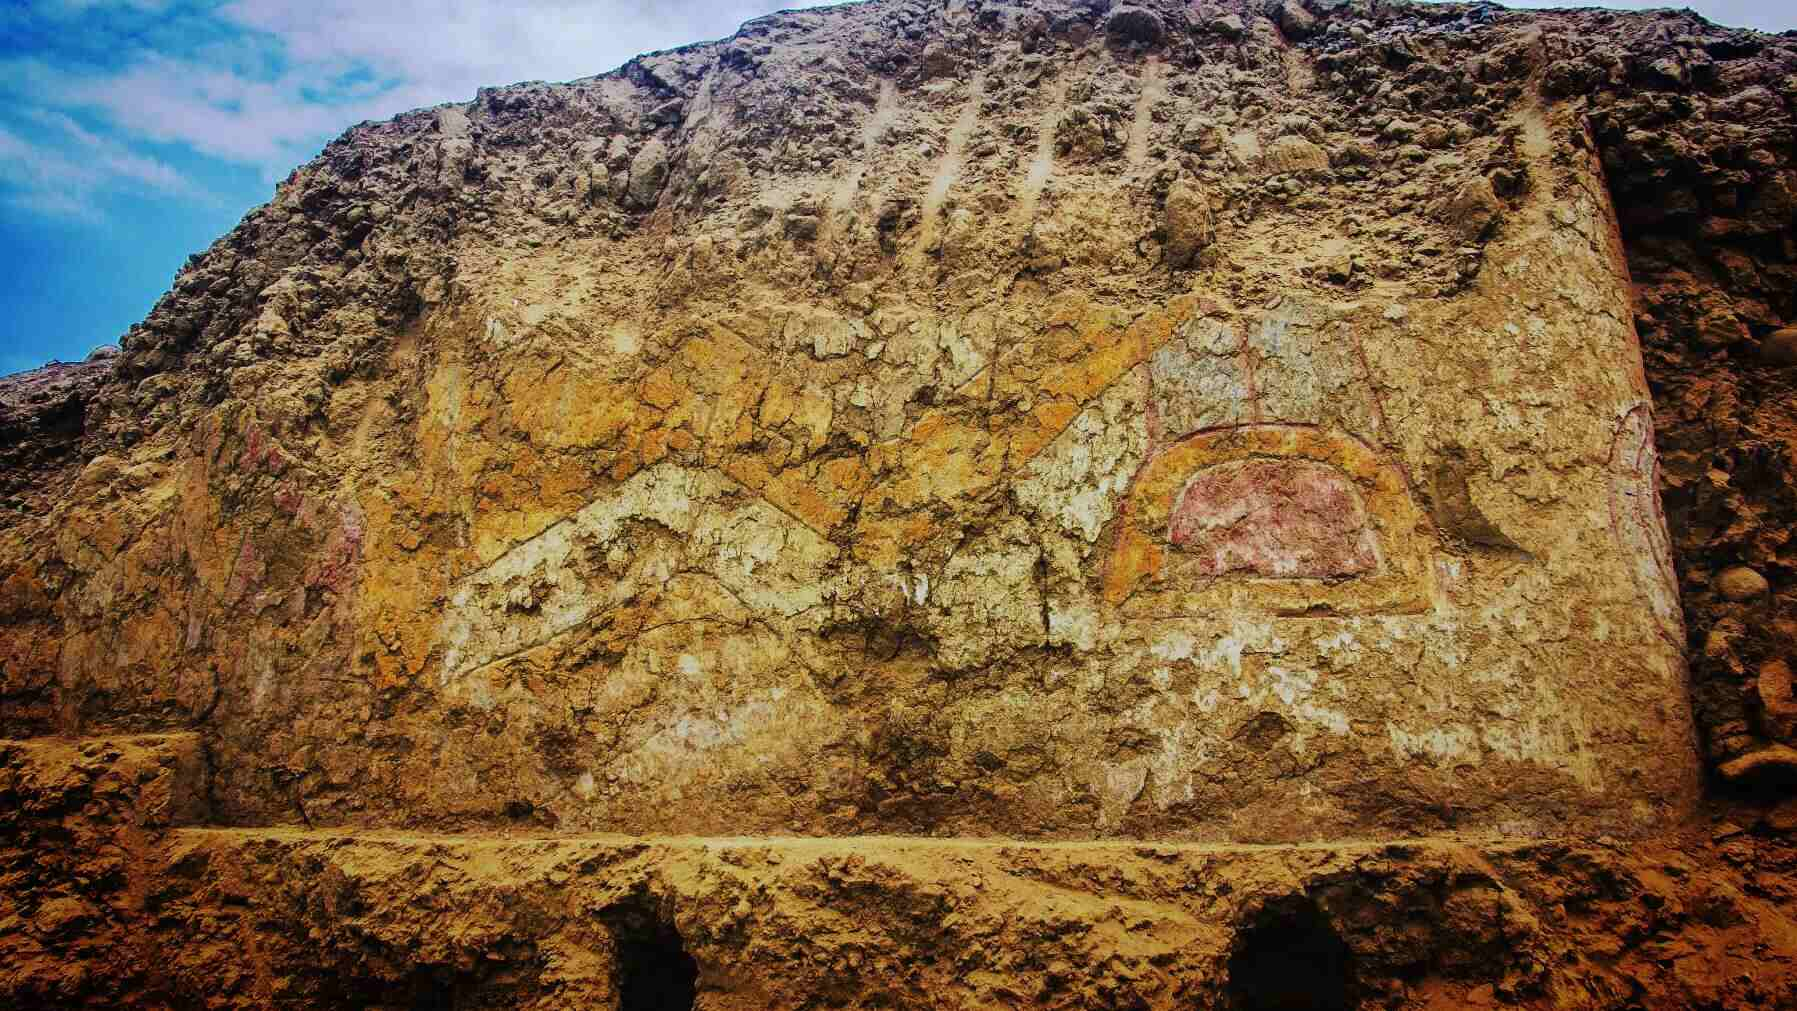 A fresco depicting an ancient deity discovered in Peru